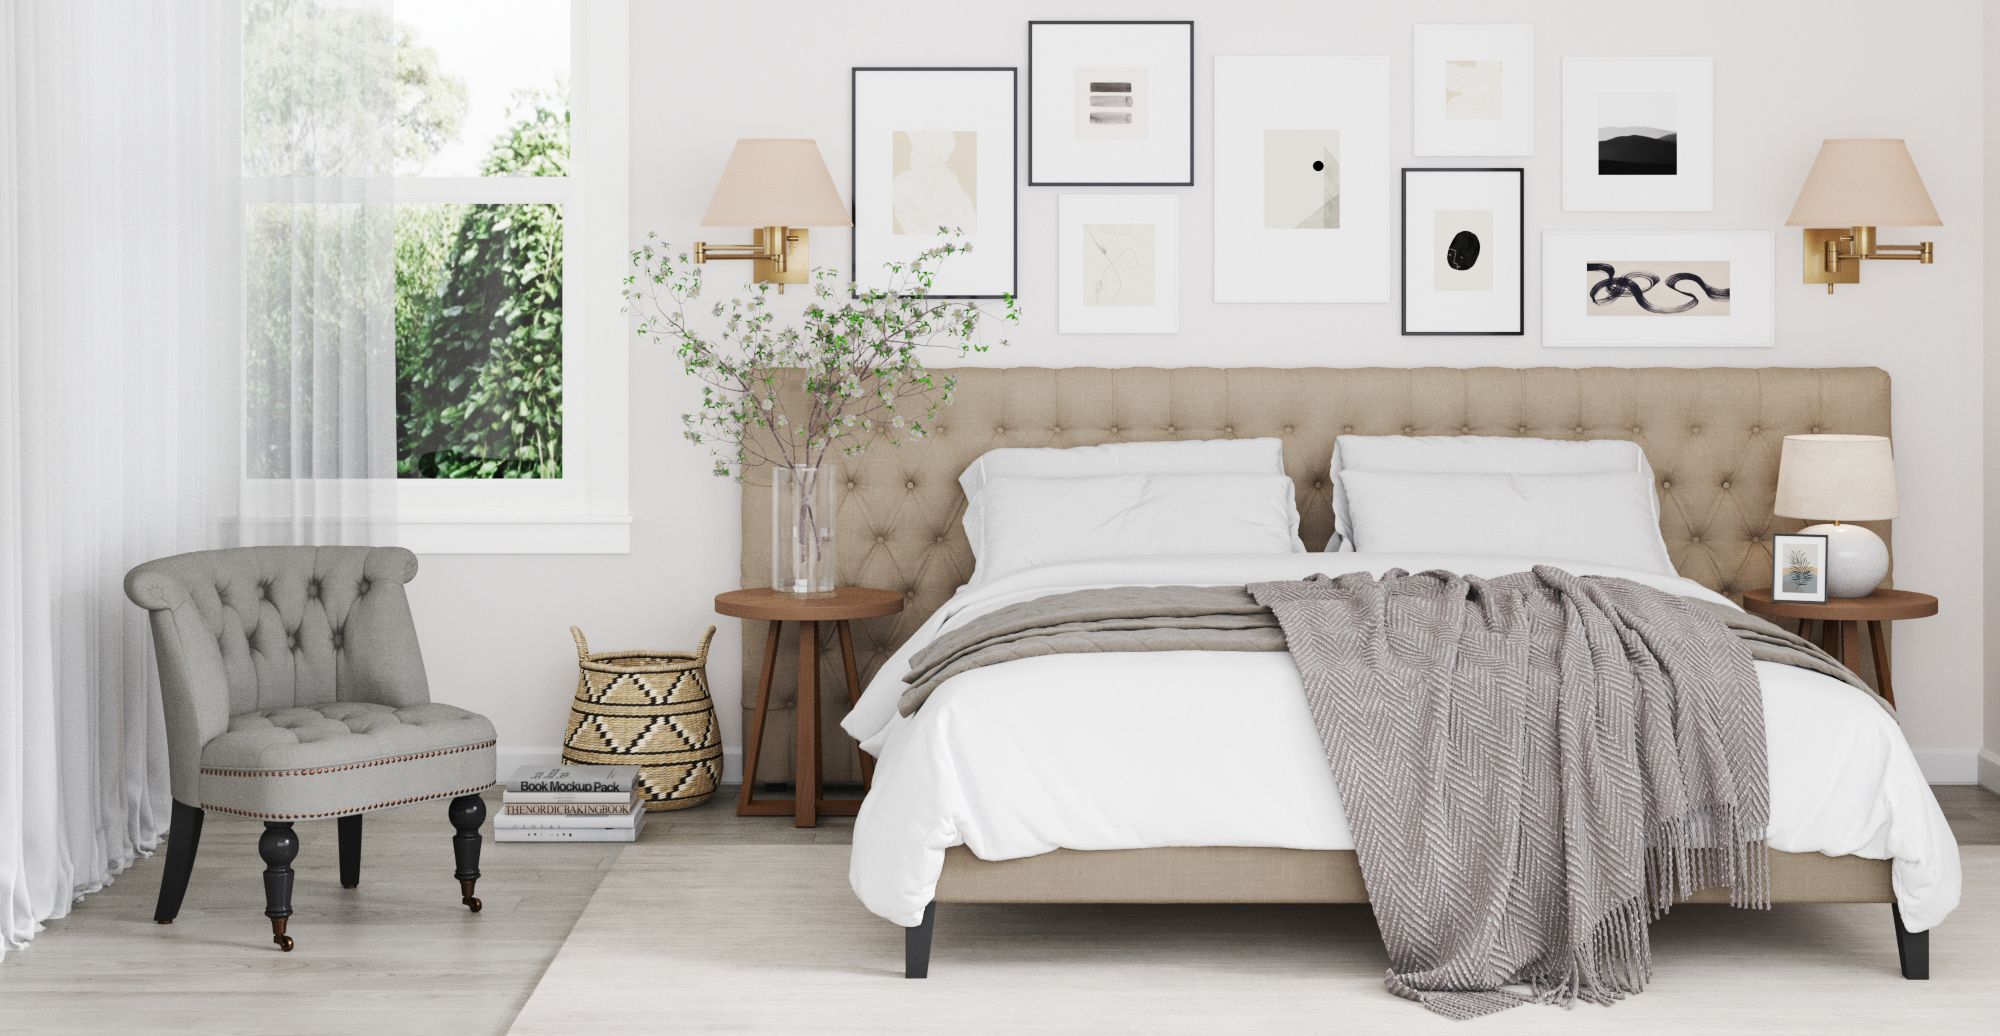 Brosa Emily Wide King Size Bed Head styled in classic traditional bedroom